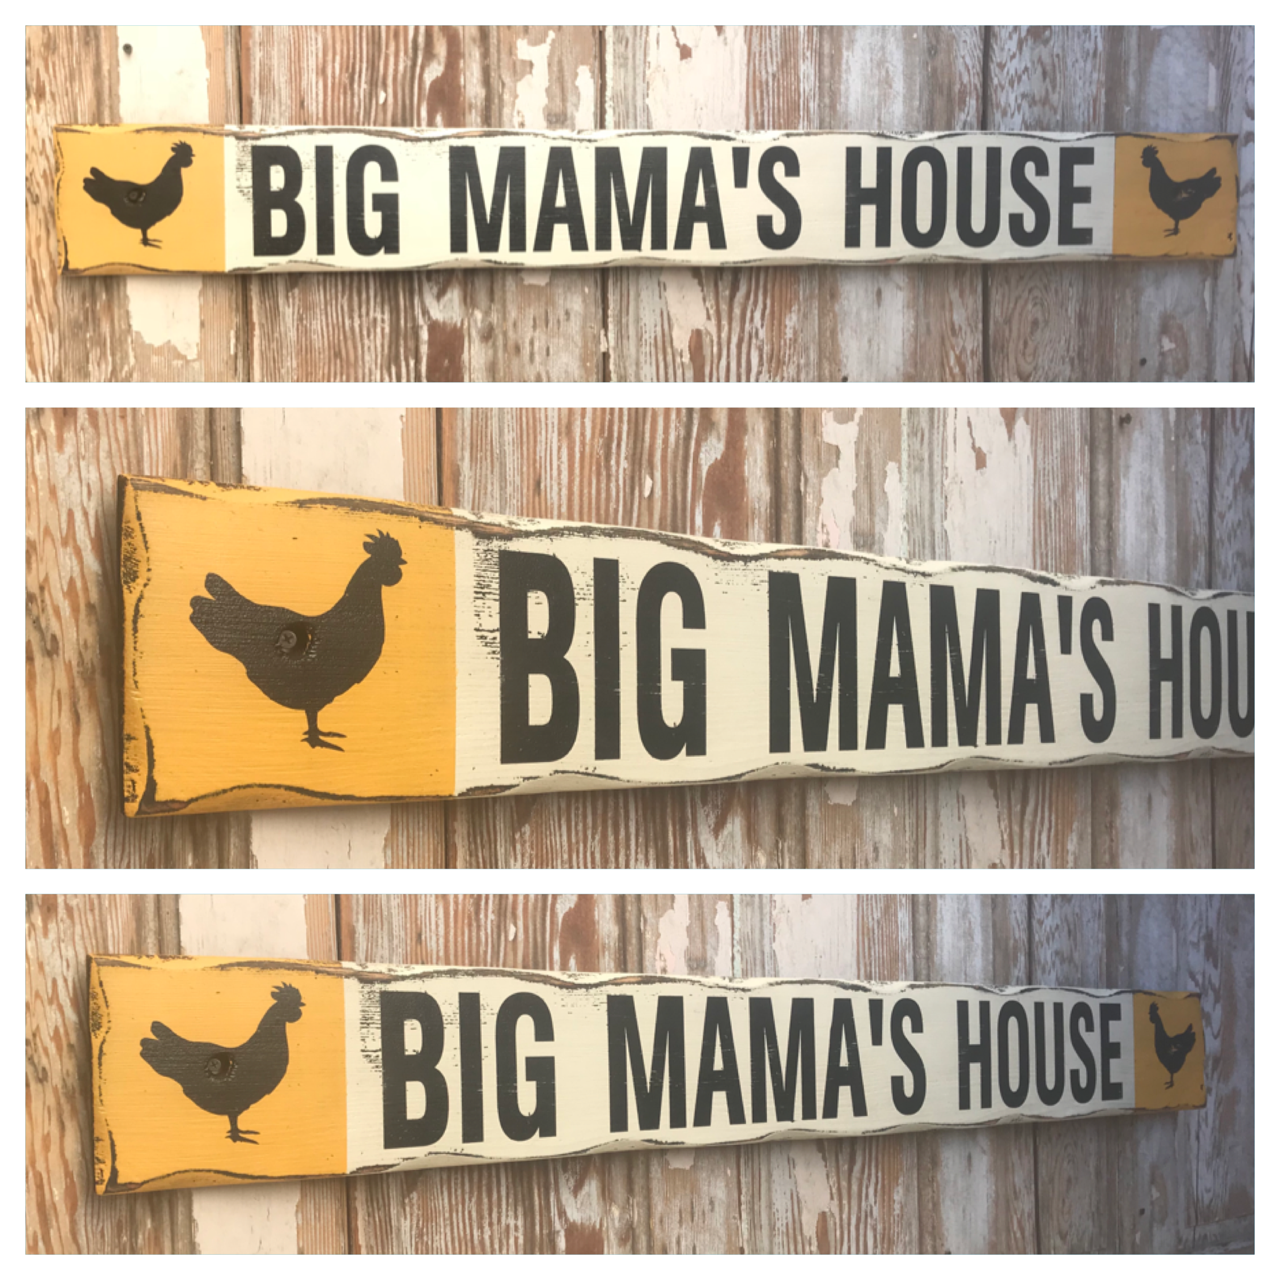 Big Mama's House.  Rustic 4 Foot Long Wood Sign